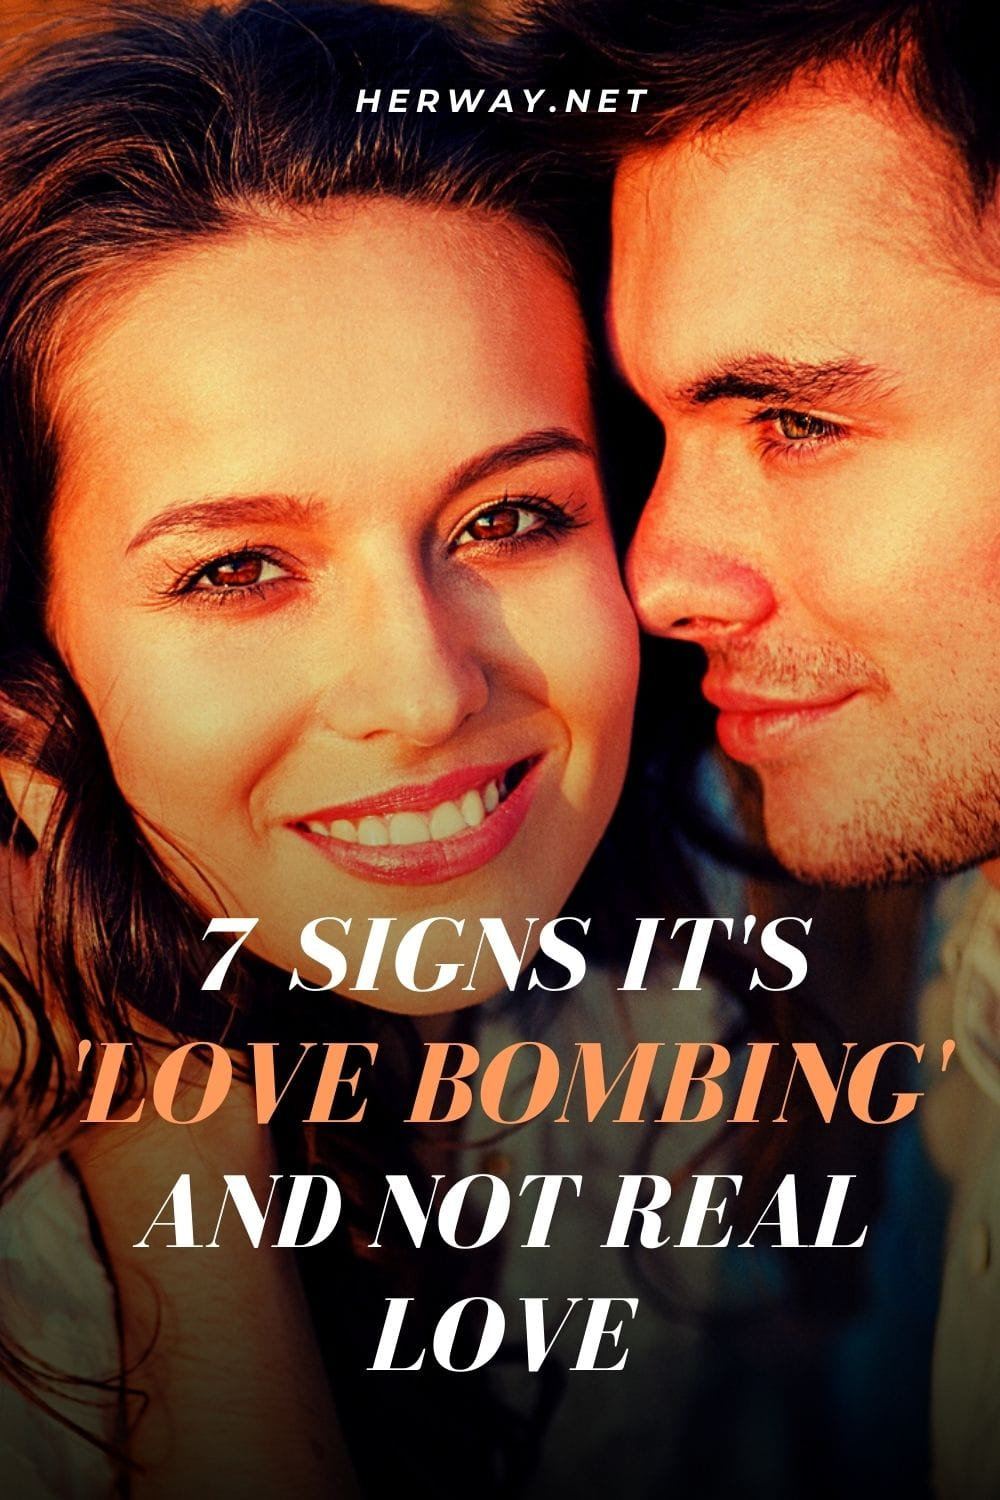 7 Signs It's 'Love Bombing' And Not Real Love